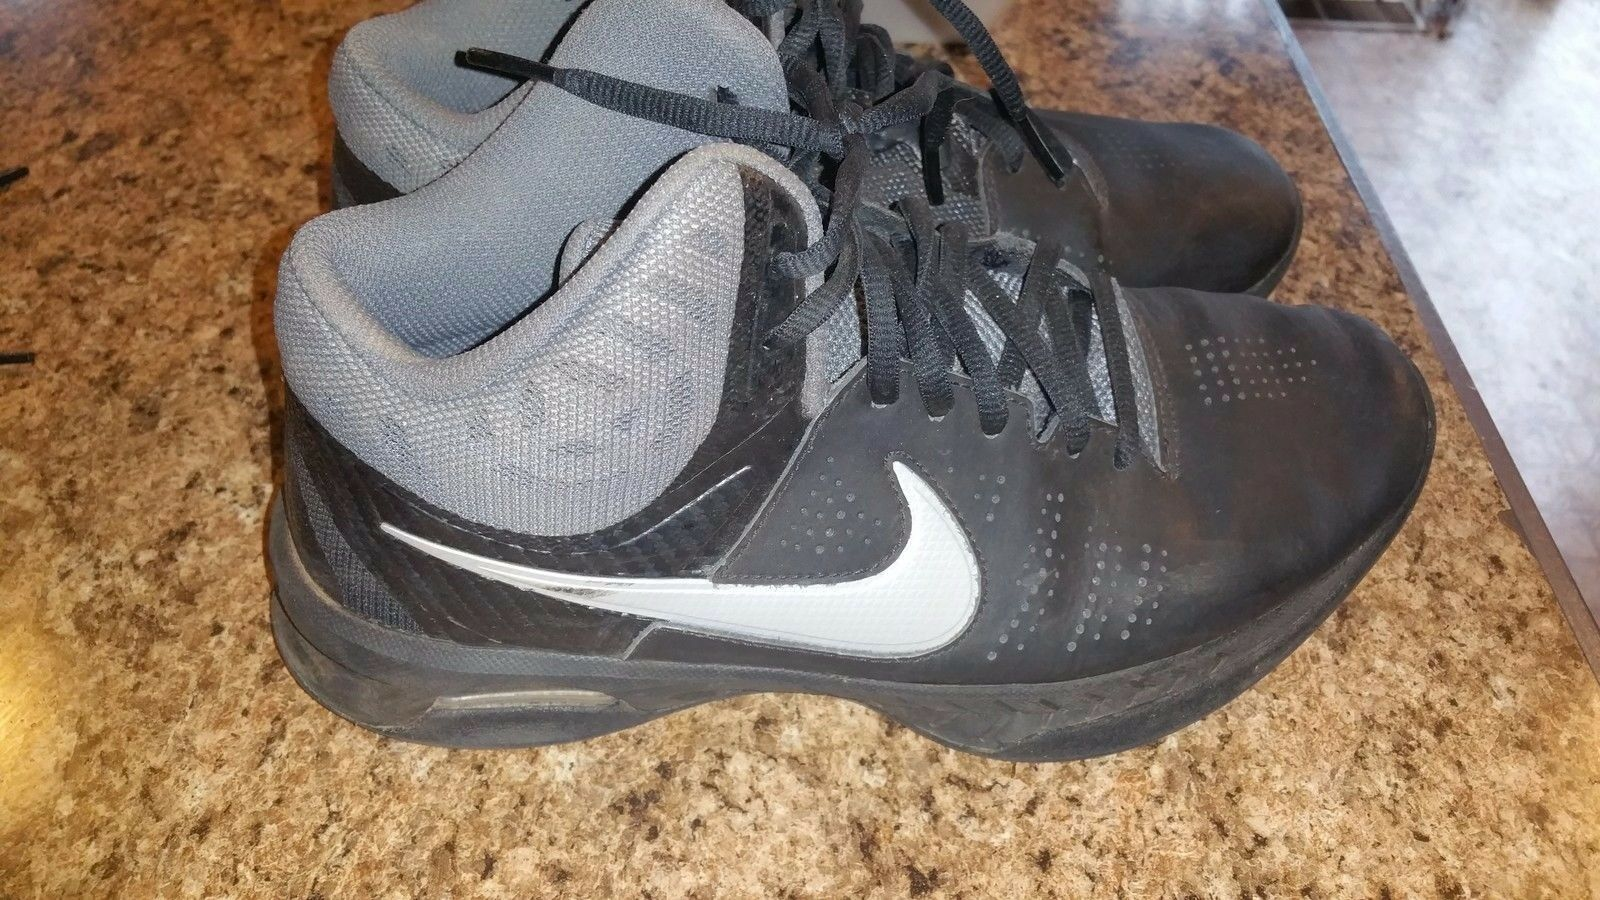 Mens Used Nike visi pro 6 shoes Size 7.5 In Good Condition